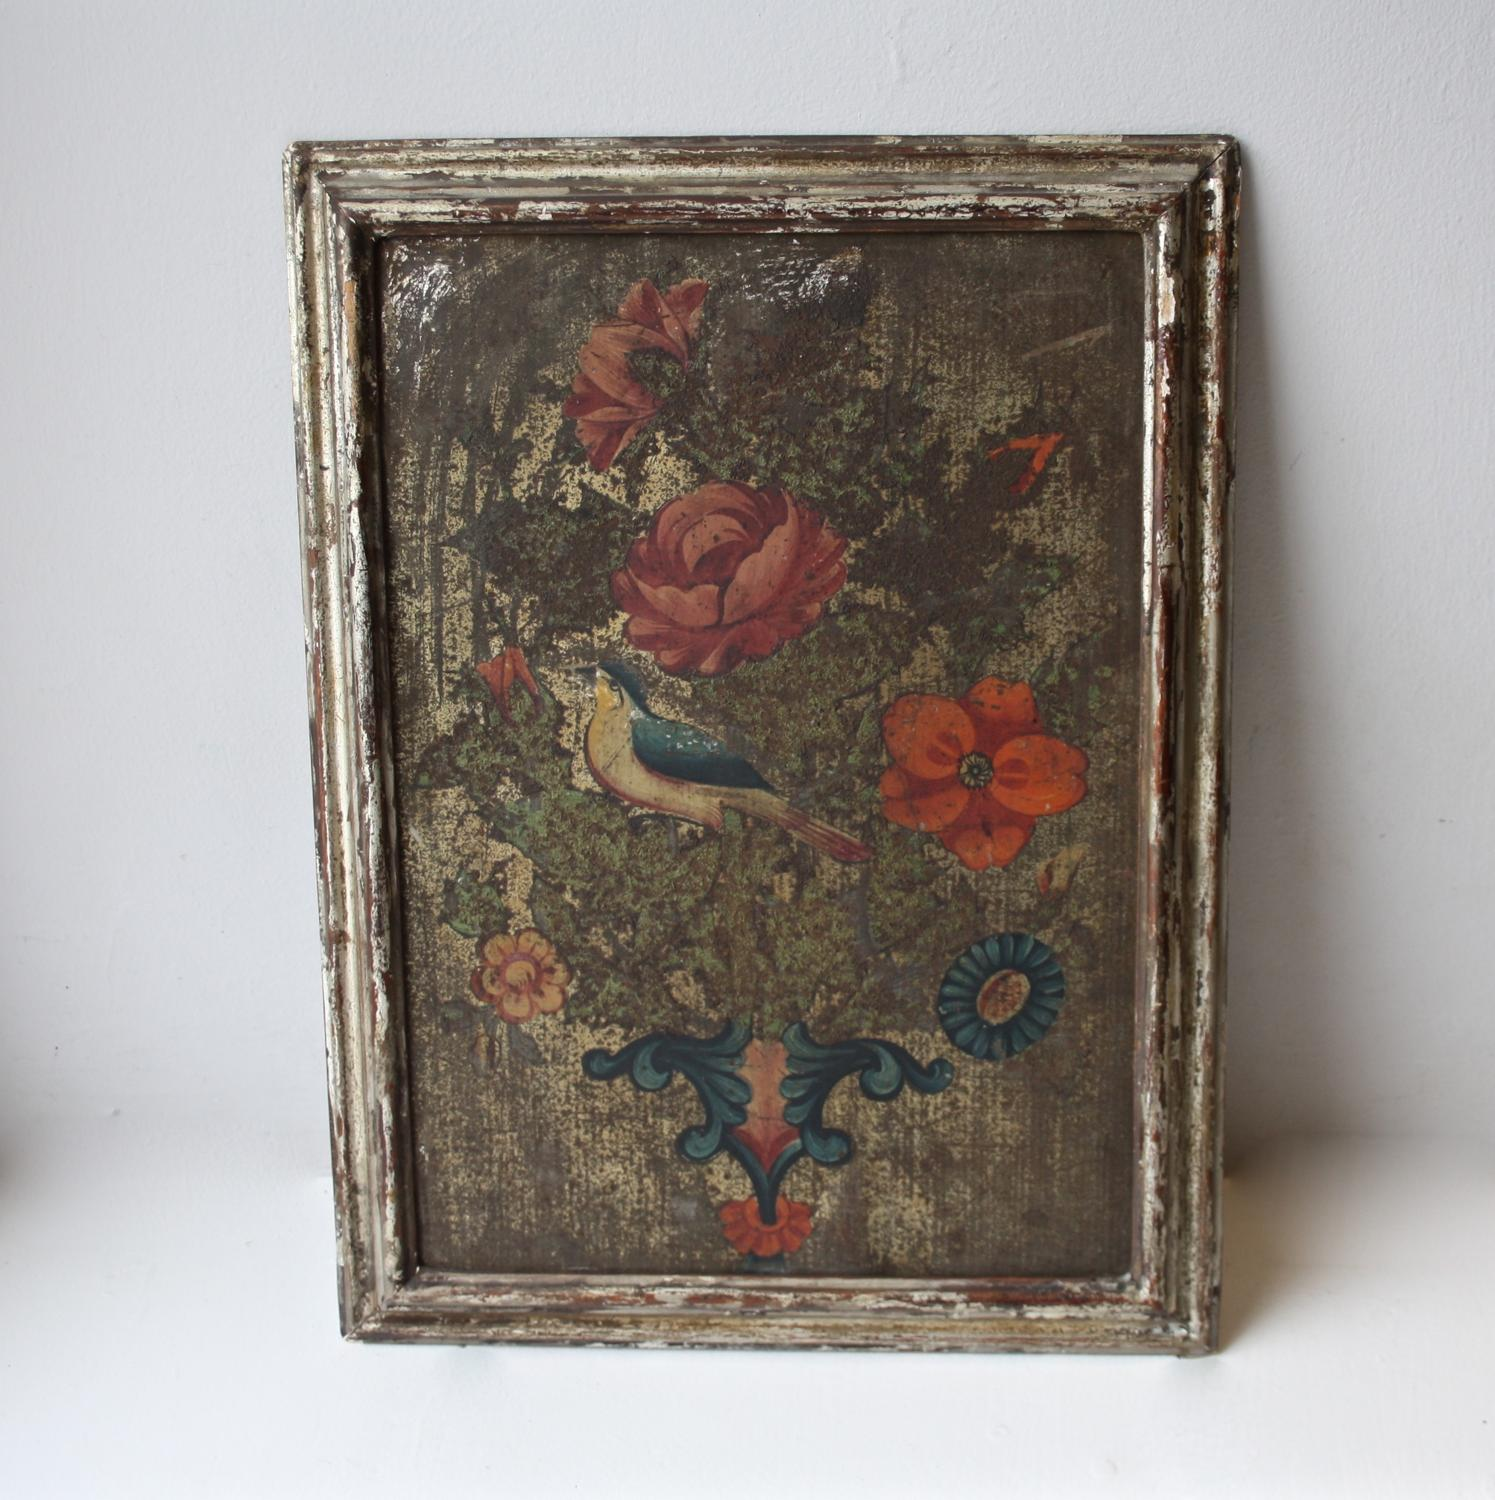 19th century French painting on tin